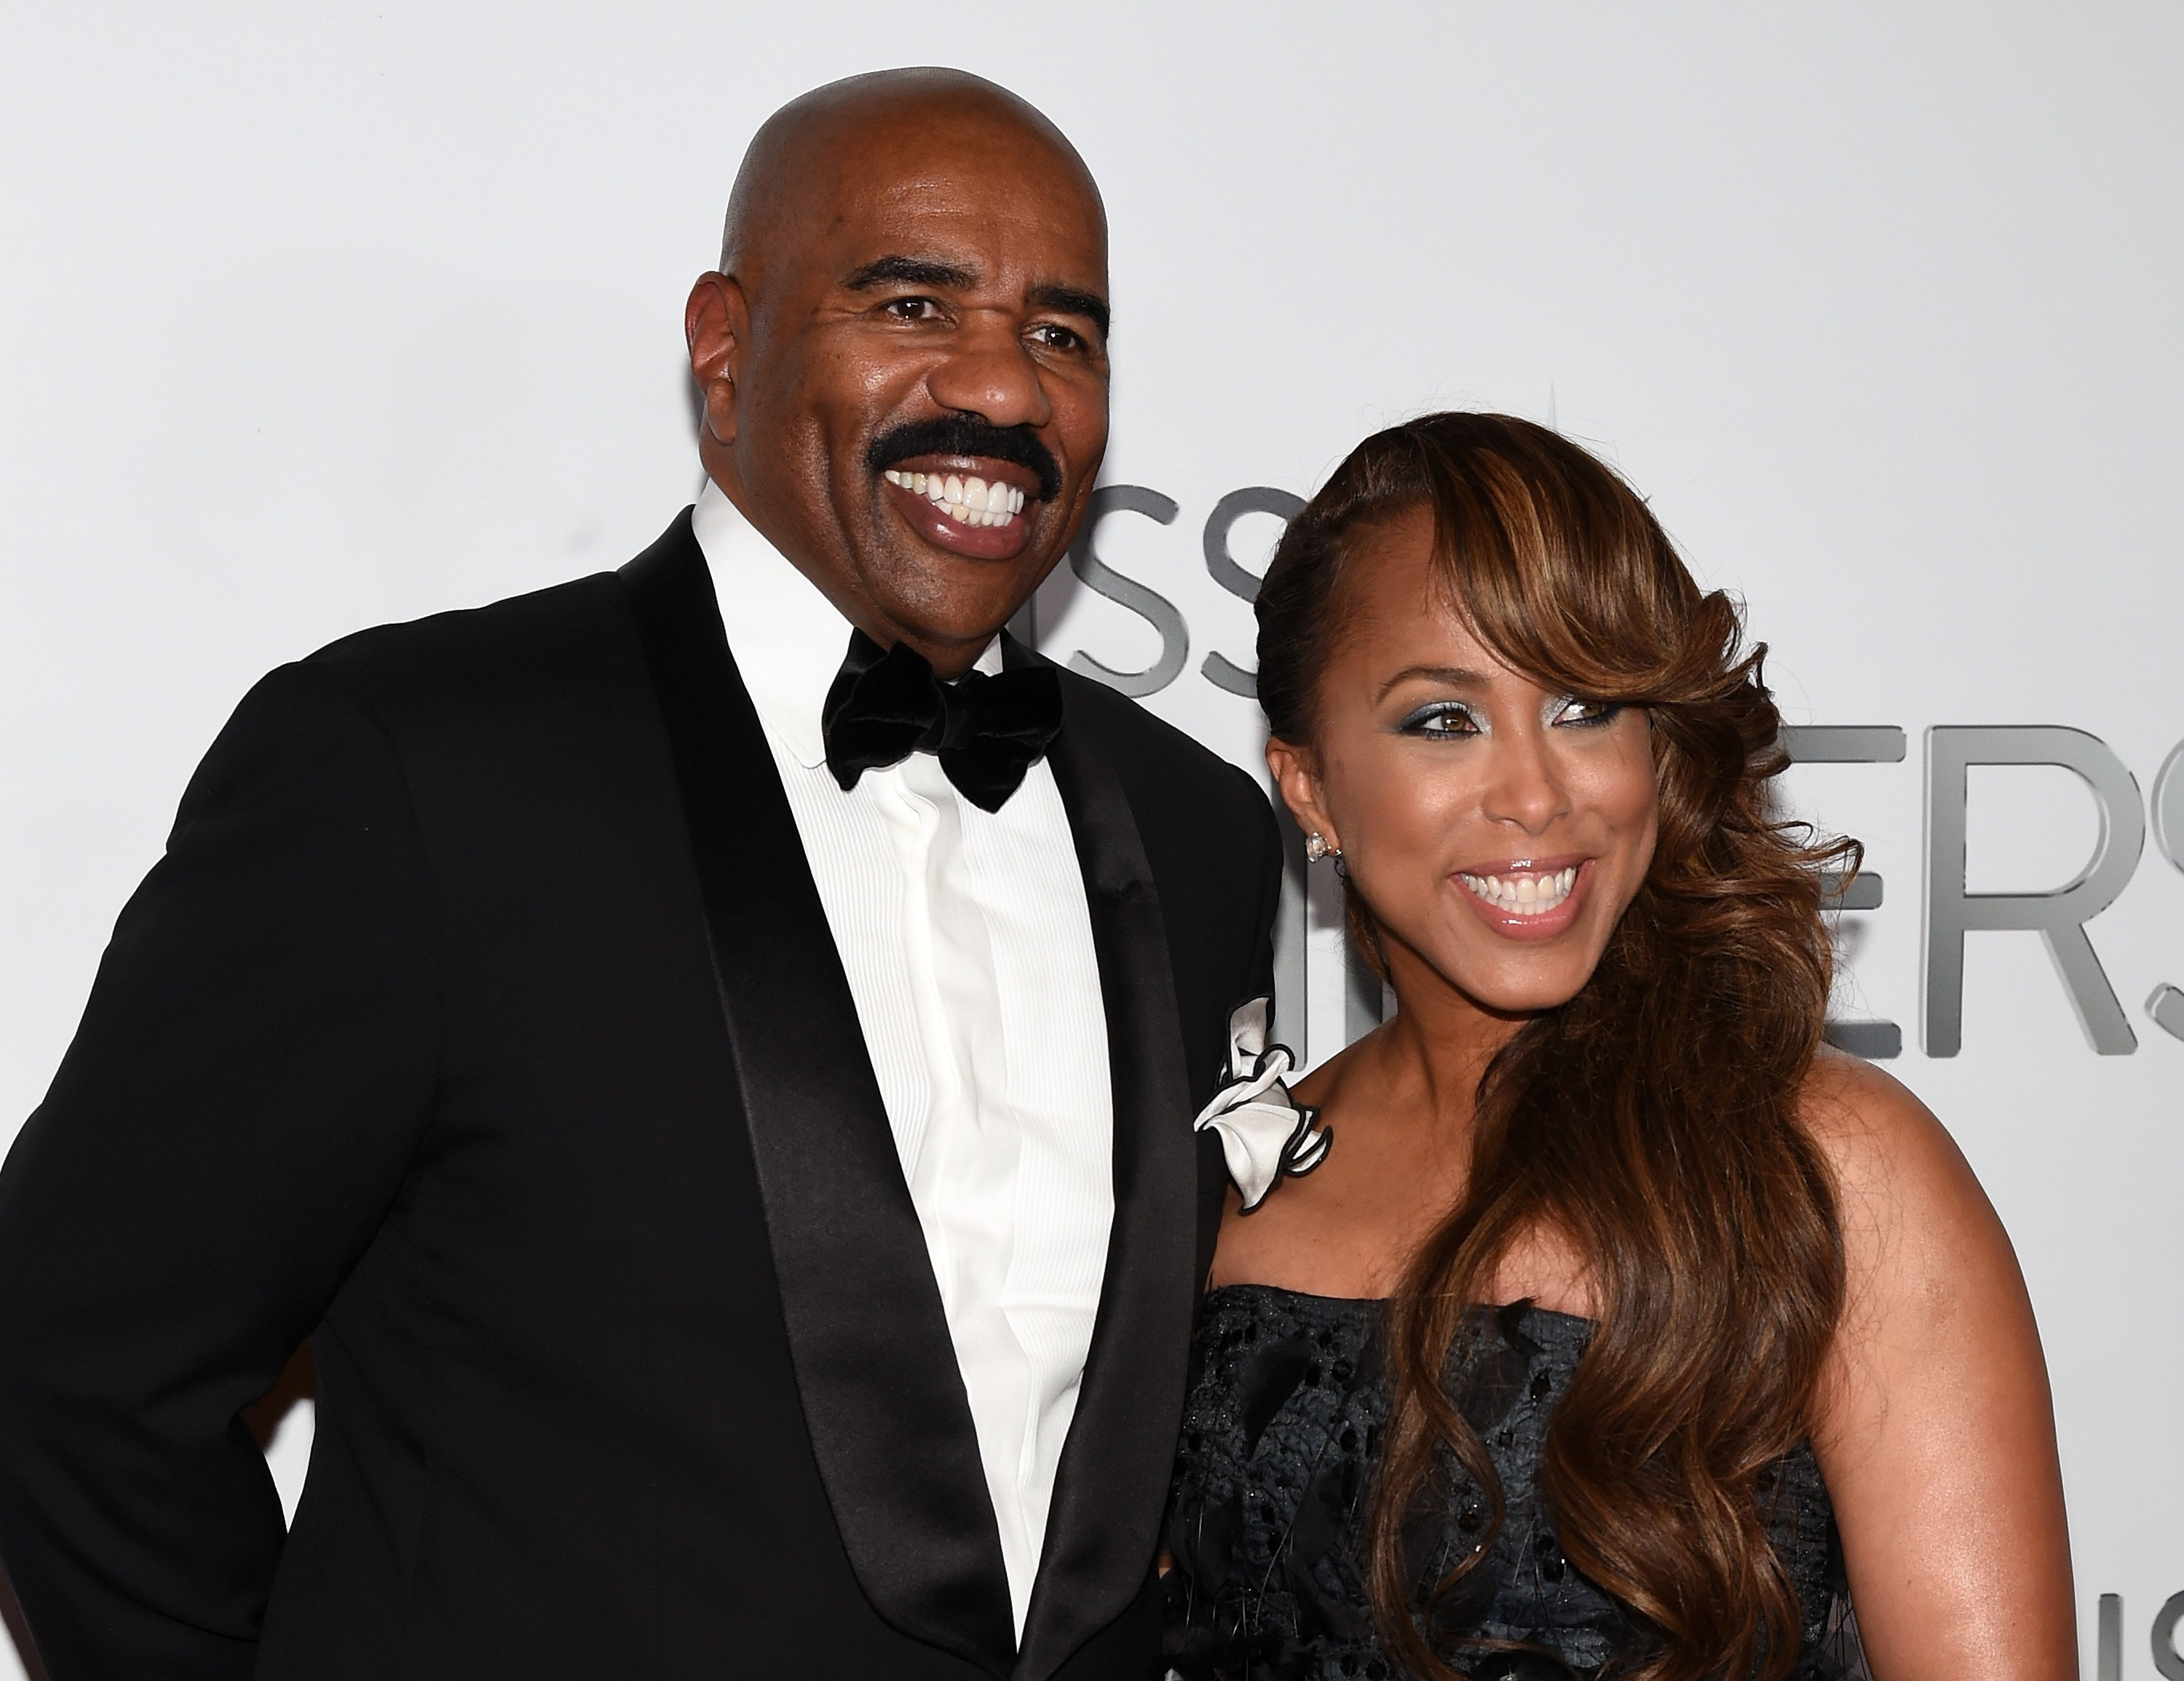 Steve & Marjorie Harvey at the 2015 Miss Universe Pageant on Dec. 20, 2015 in Las Vegas | Photo: Getty Images